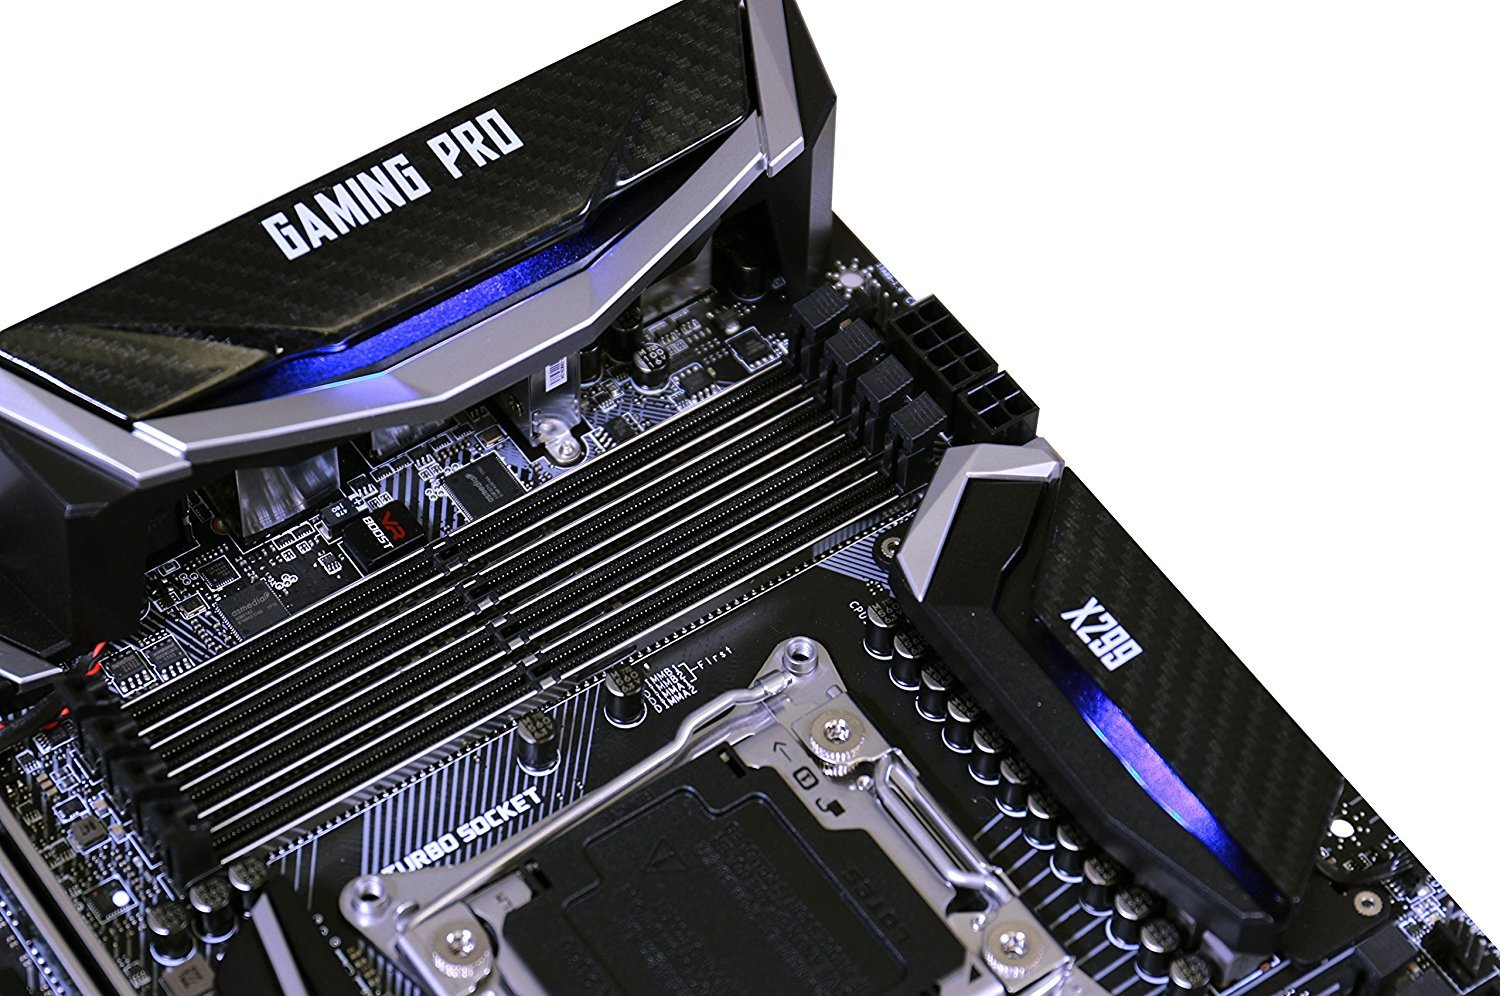 MSI X299 Gaming Pro Carbon AC-WIFI Motherboard image